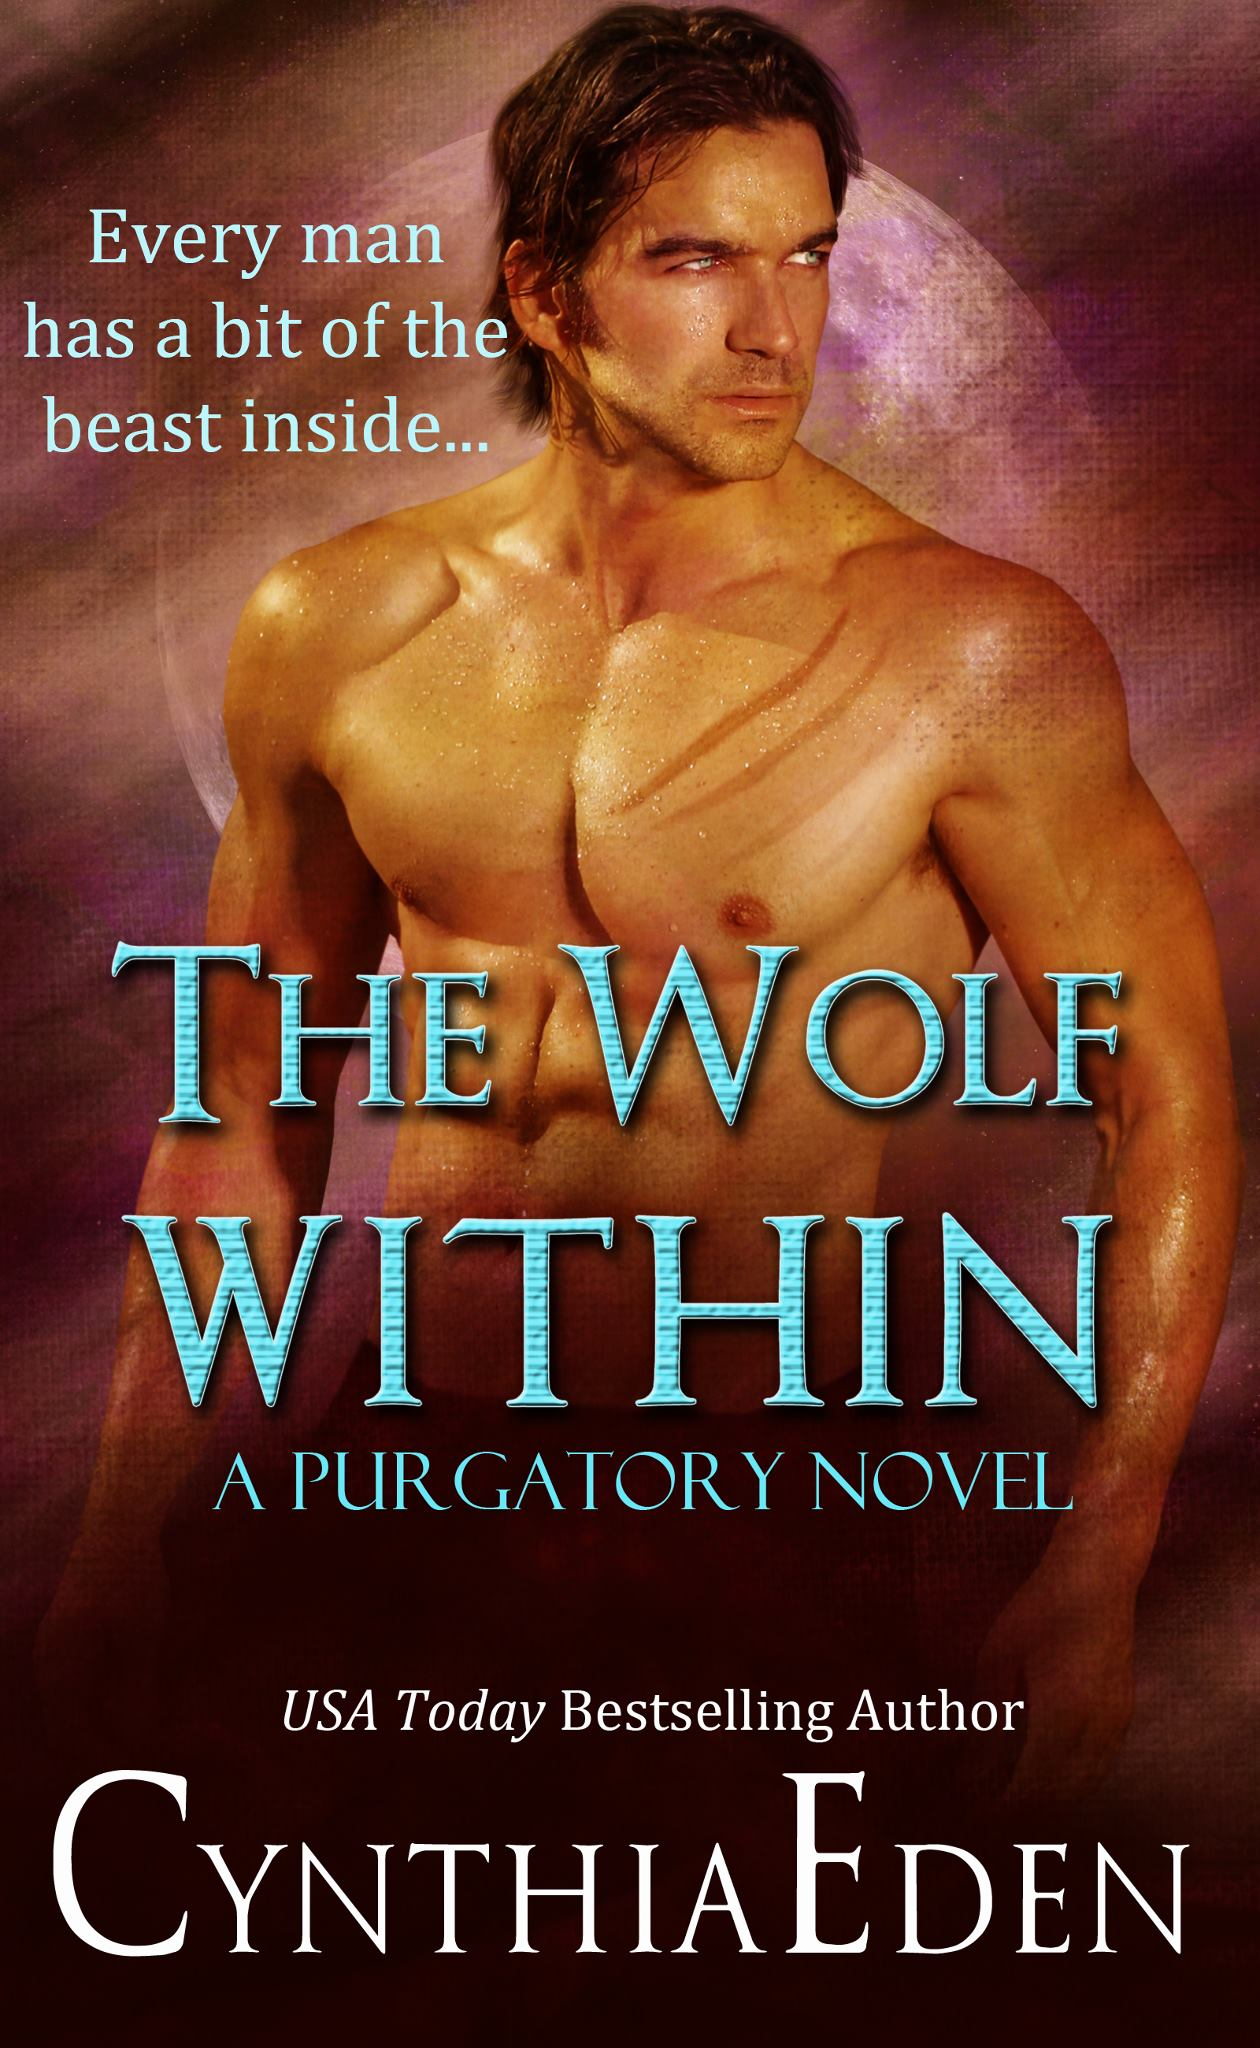 Bestselling Author Cynthia Eden Has The First Book In Her Purgatory  Series, The Wolf Within, Currently On Sale For $99 (and Free For Prime  Members Who